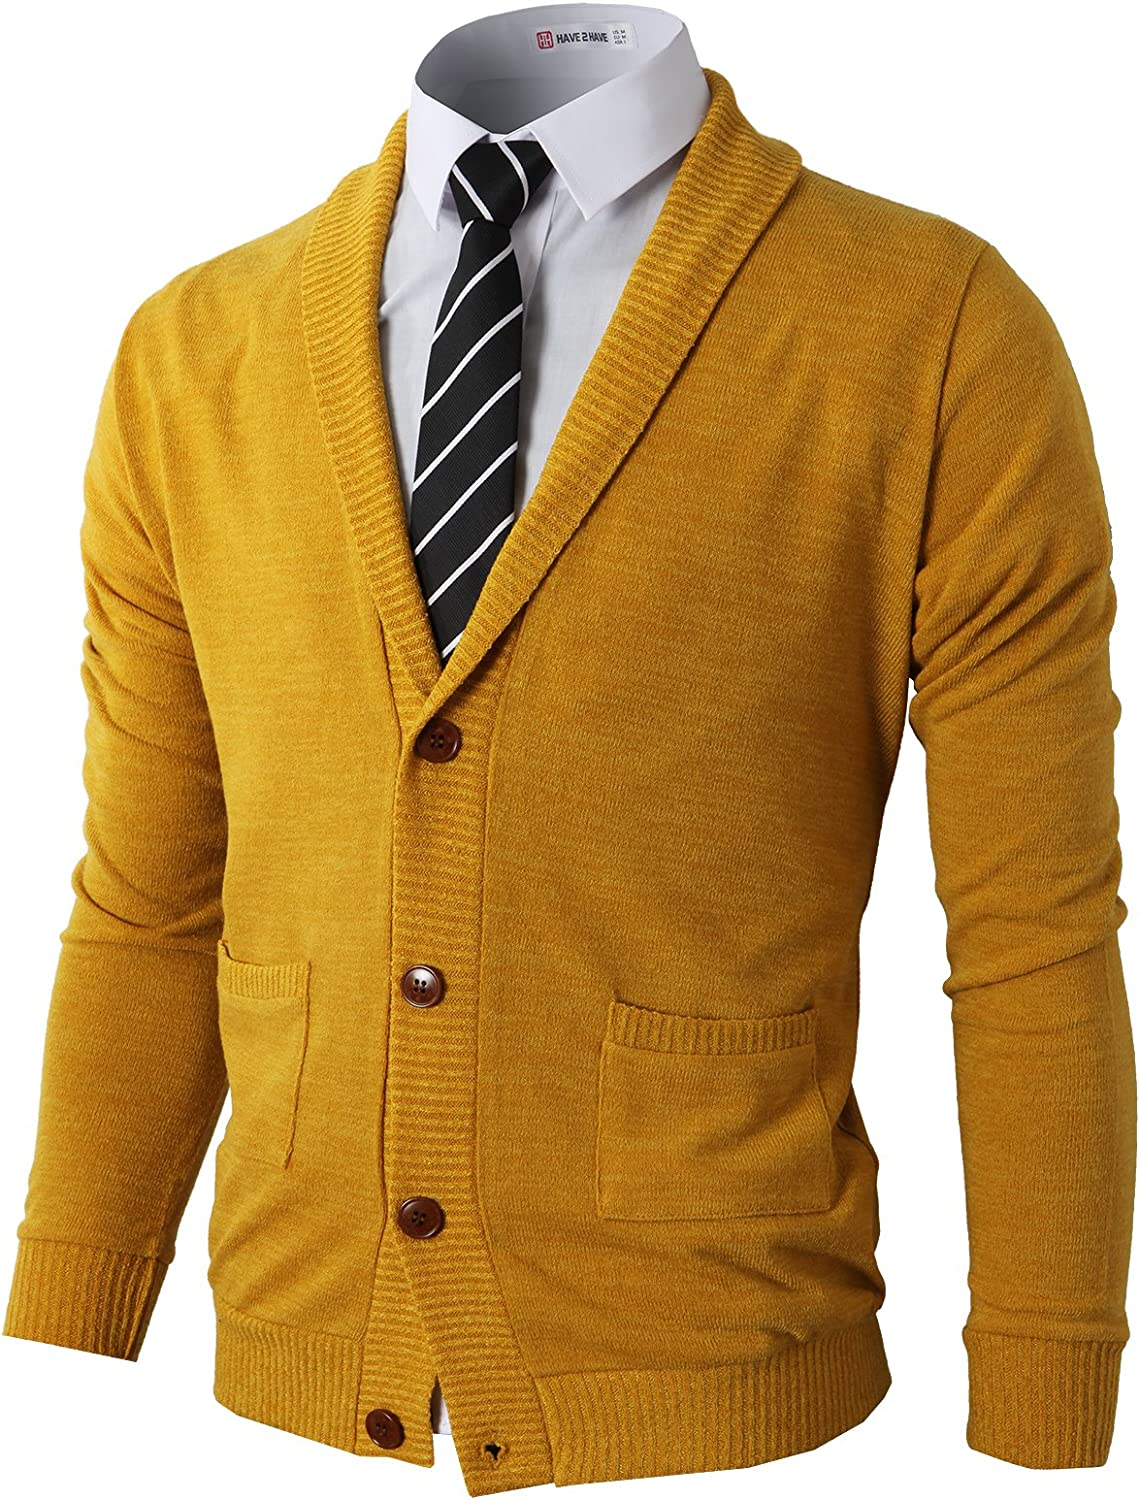 60s 70s Men's Jackets & Sweaters H2H Mens Casual Comfortable Fit Cardigan Sweater Shawl Collar Soft Fabric with Ribbing Edge $39.40 AT vintagedancer.com